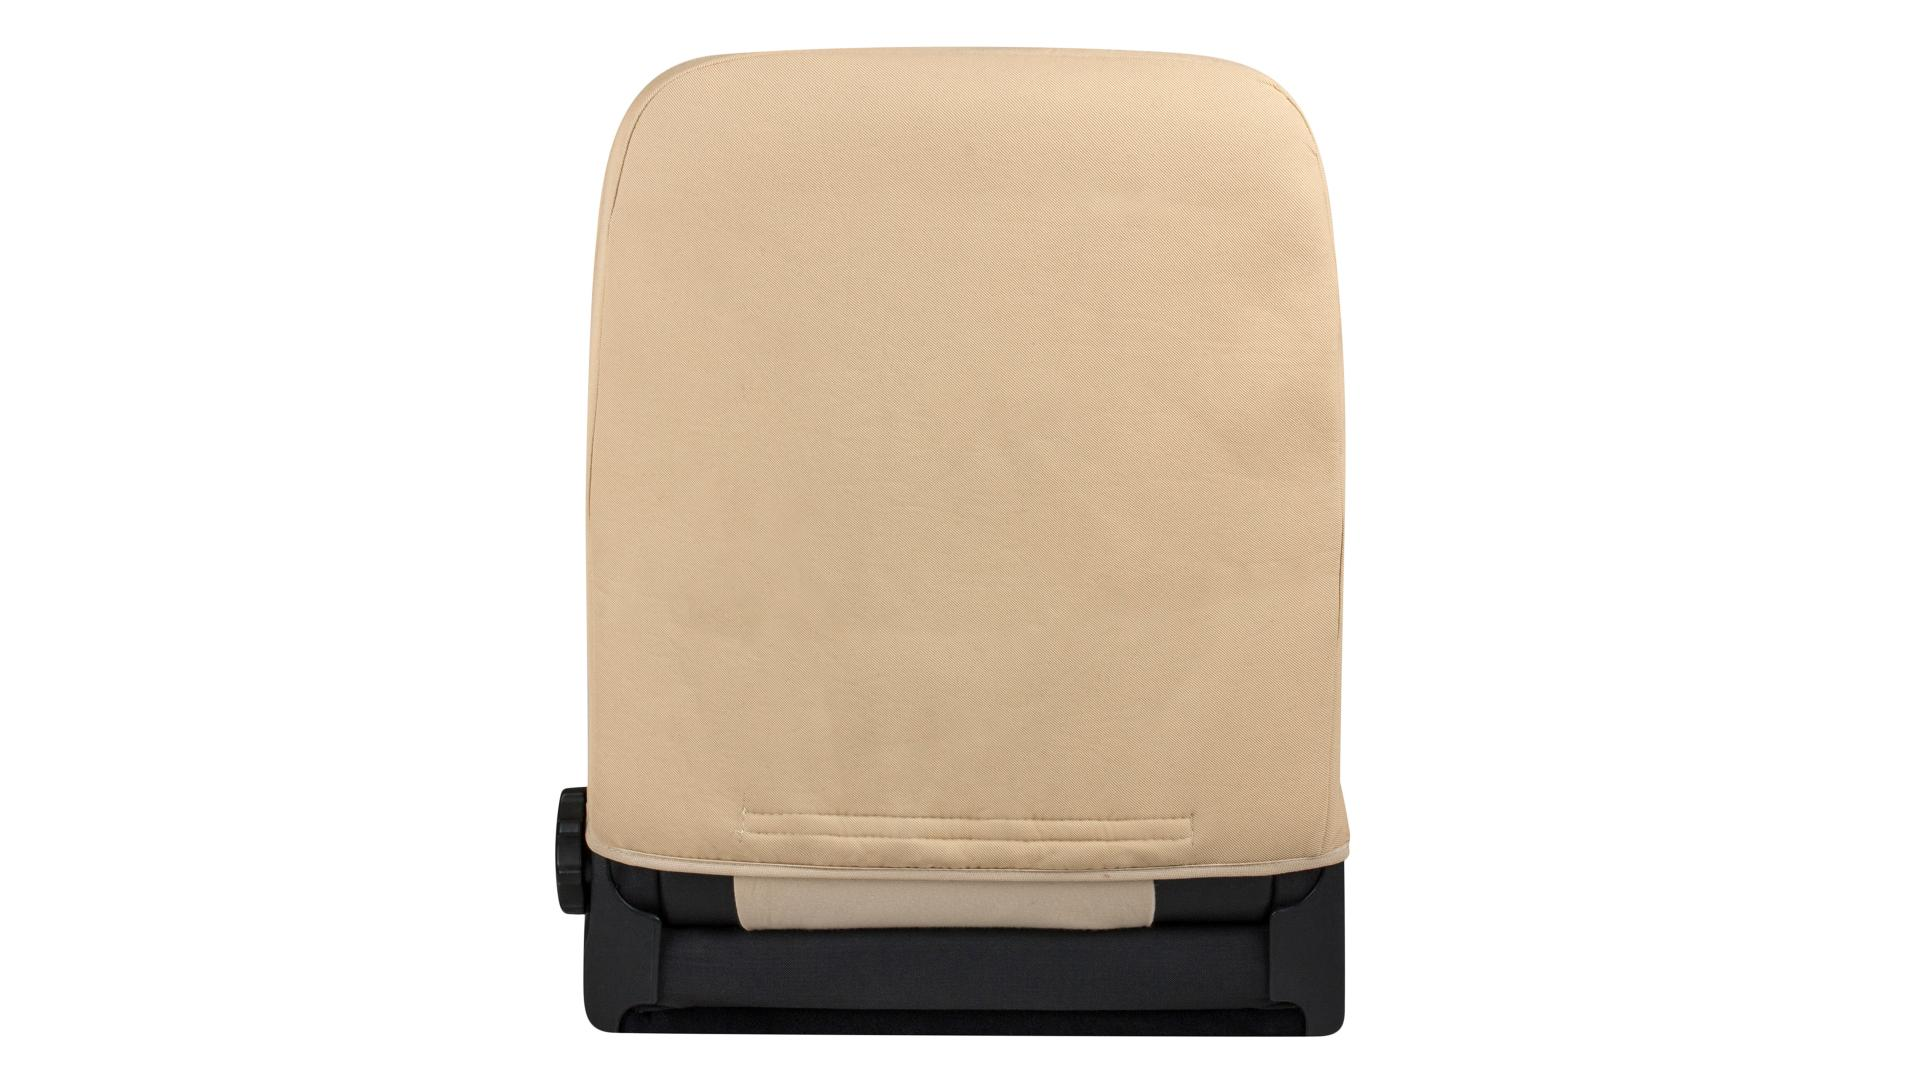 Walser Lambskin Car Seat cover Iva beige with ZIPP IT System